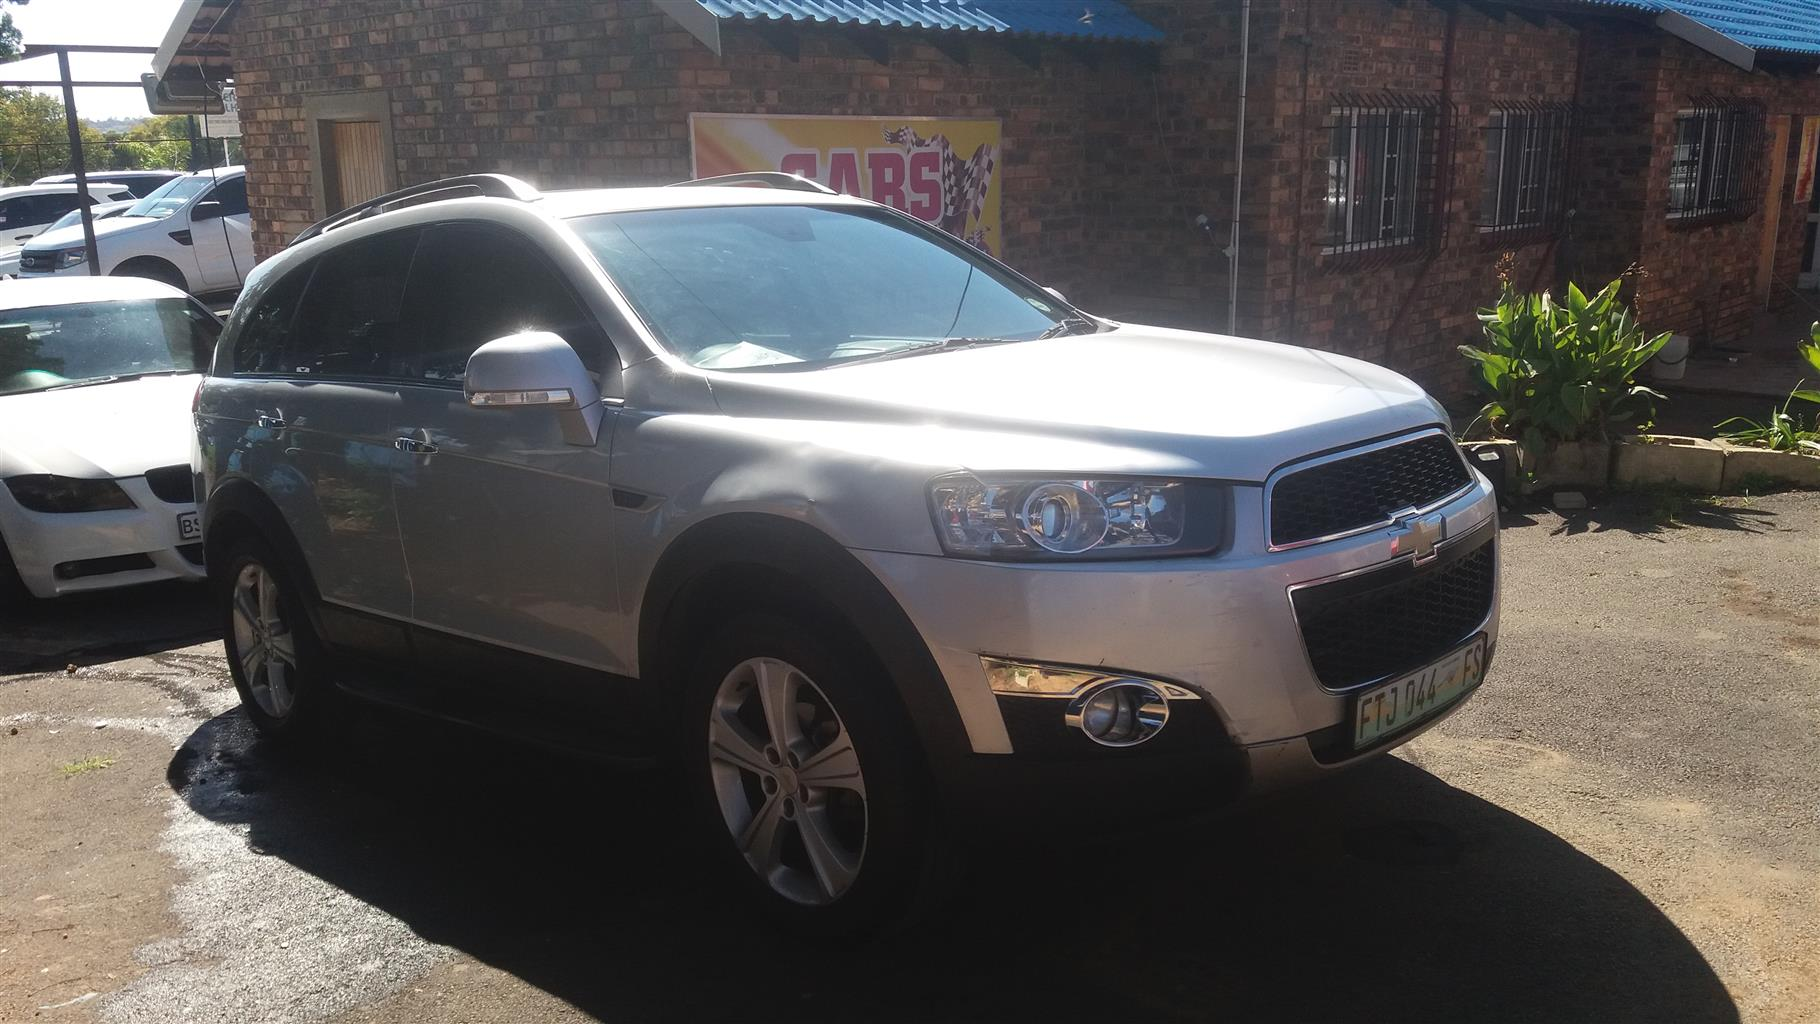 PUBLIC MASS VEHICLE AUCTION-NO RESERVE, TUESDAY 04/06/19 2PM. CARS BAKKIES SUVs, WIDE RANGE TO CHOOSE FROM.